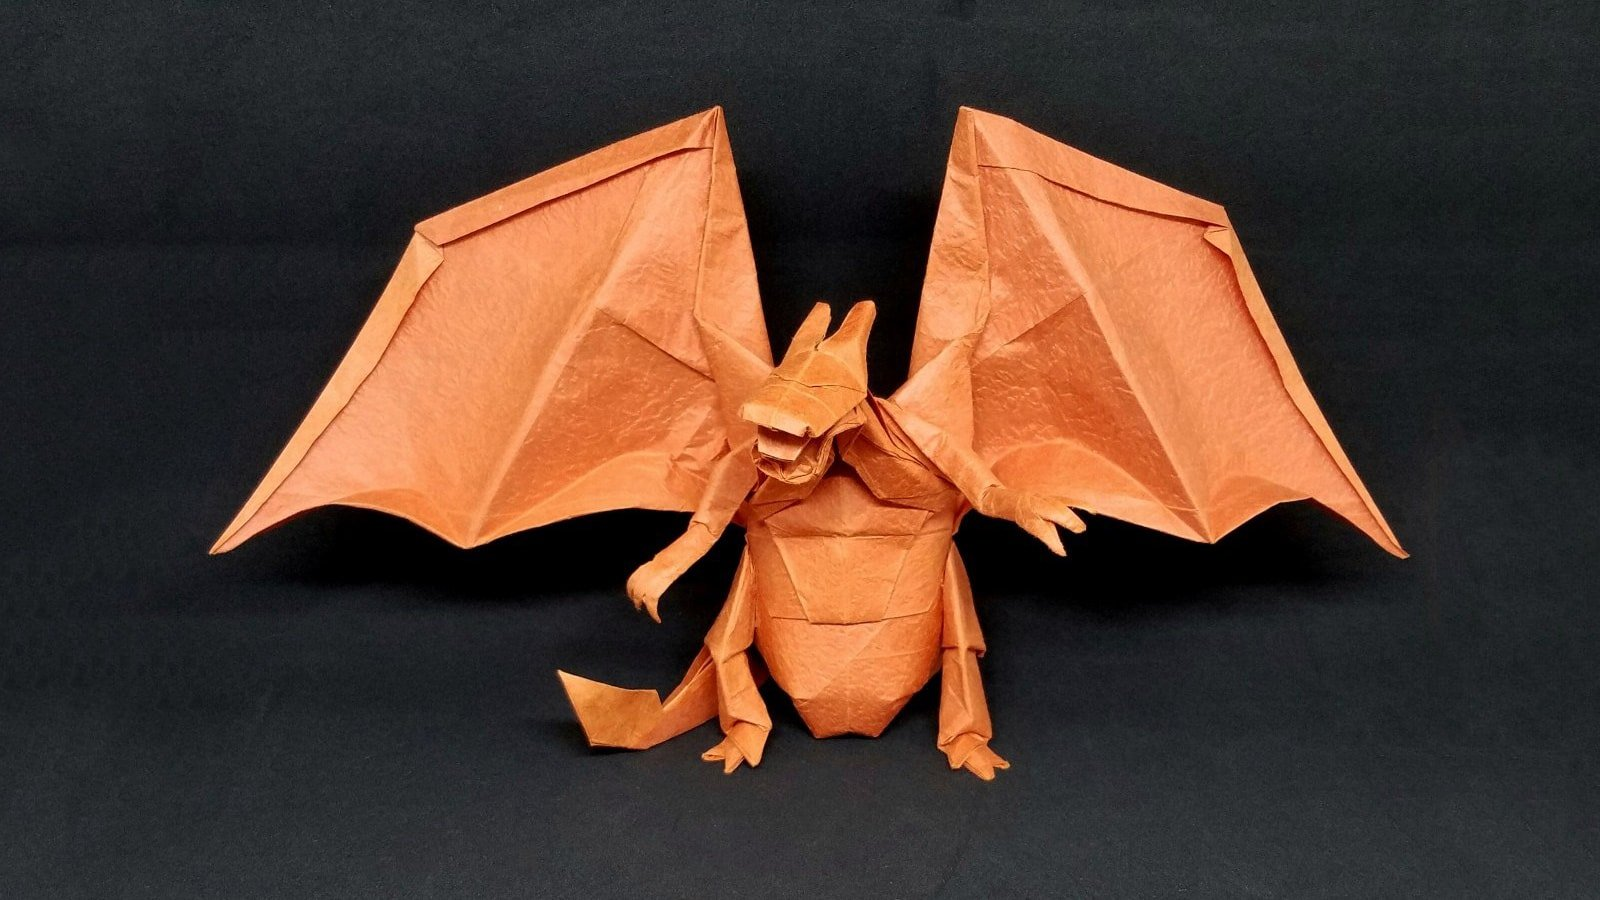 Origami Learn Paper Folding Free Instructions More